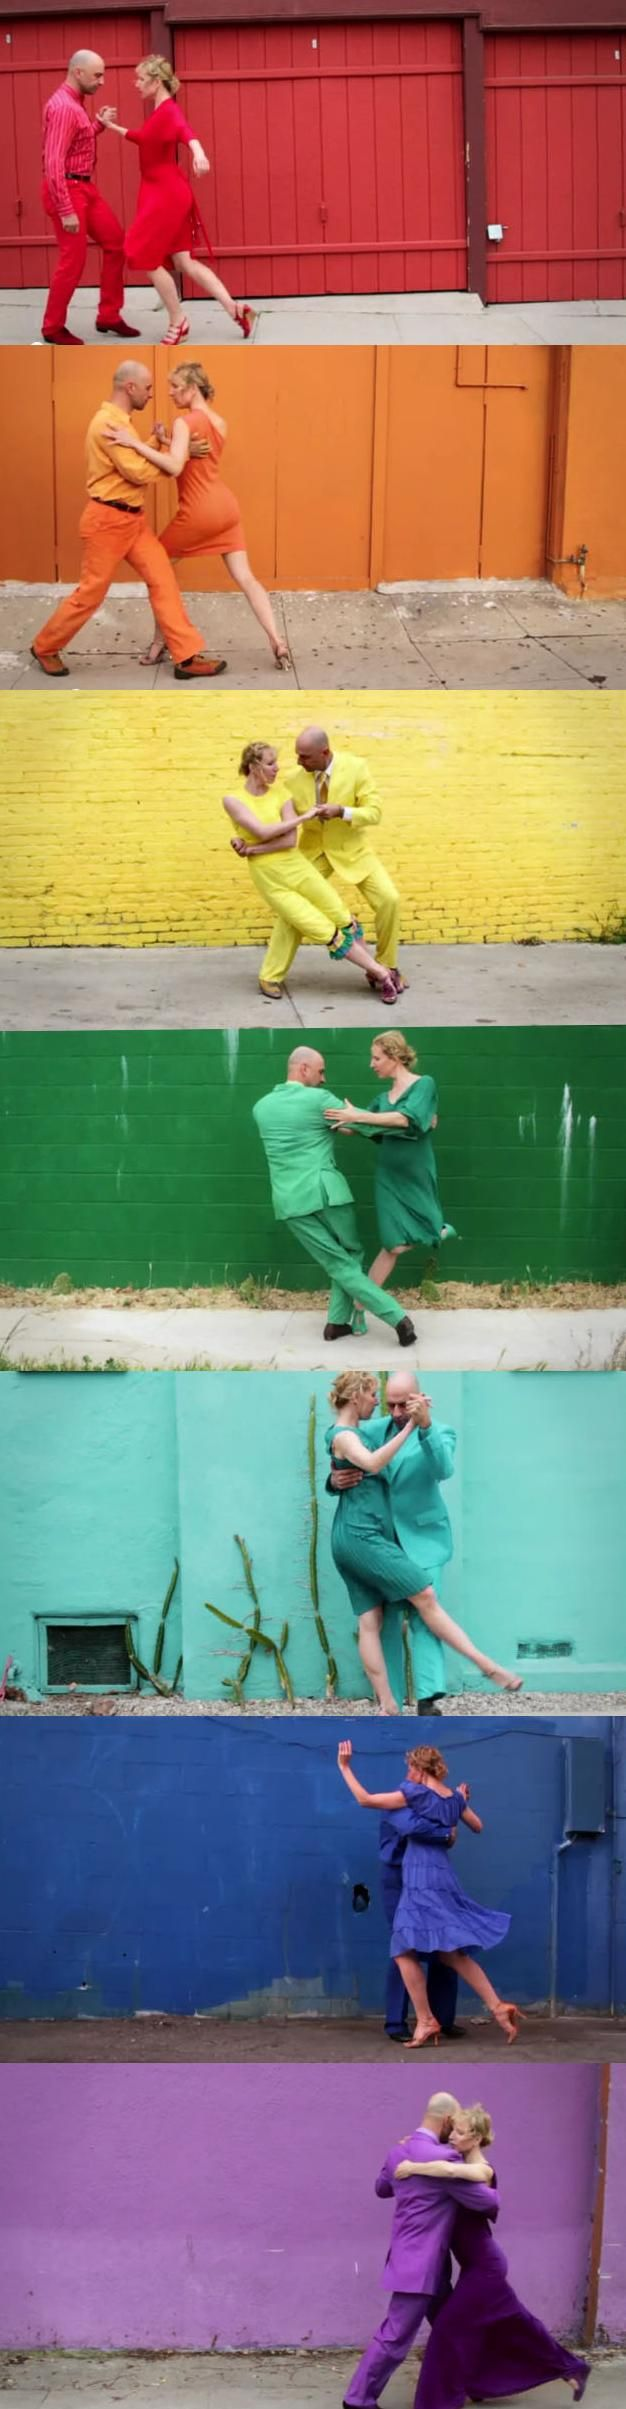 """another creative video from OK GO - """"Skyscrapers"""" #dance #colors #rainbow"""